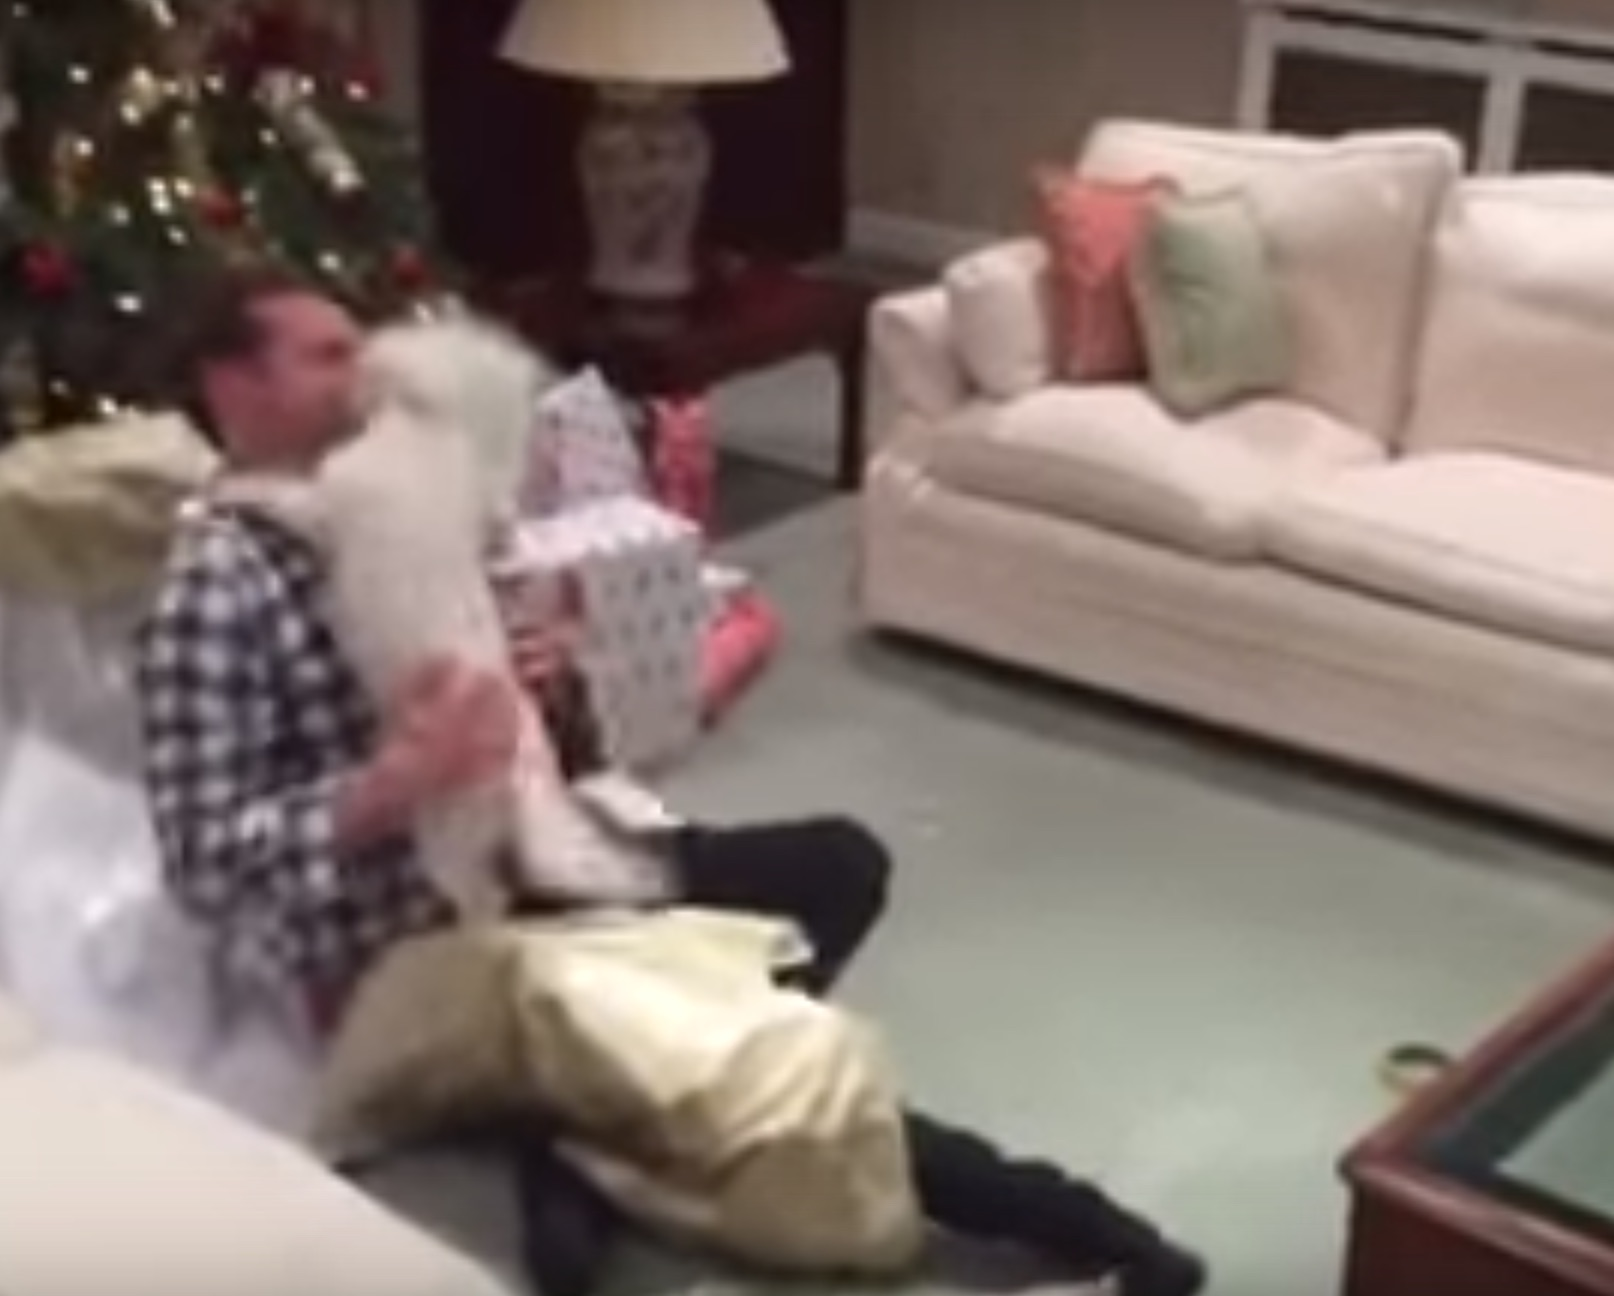 Close out 2015 with this video of a dog joyfully unwrapping its owner